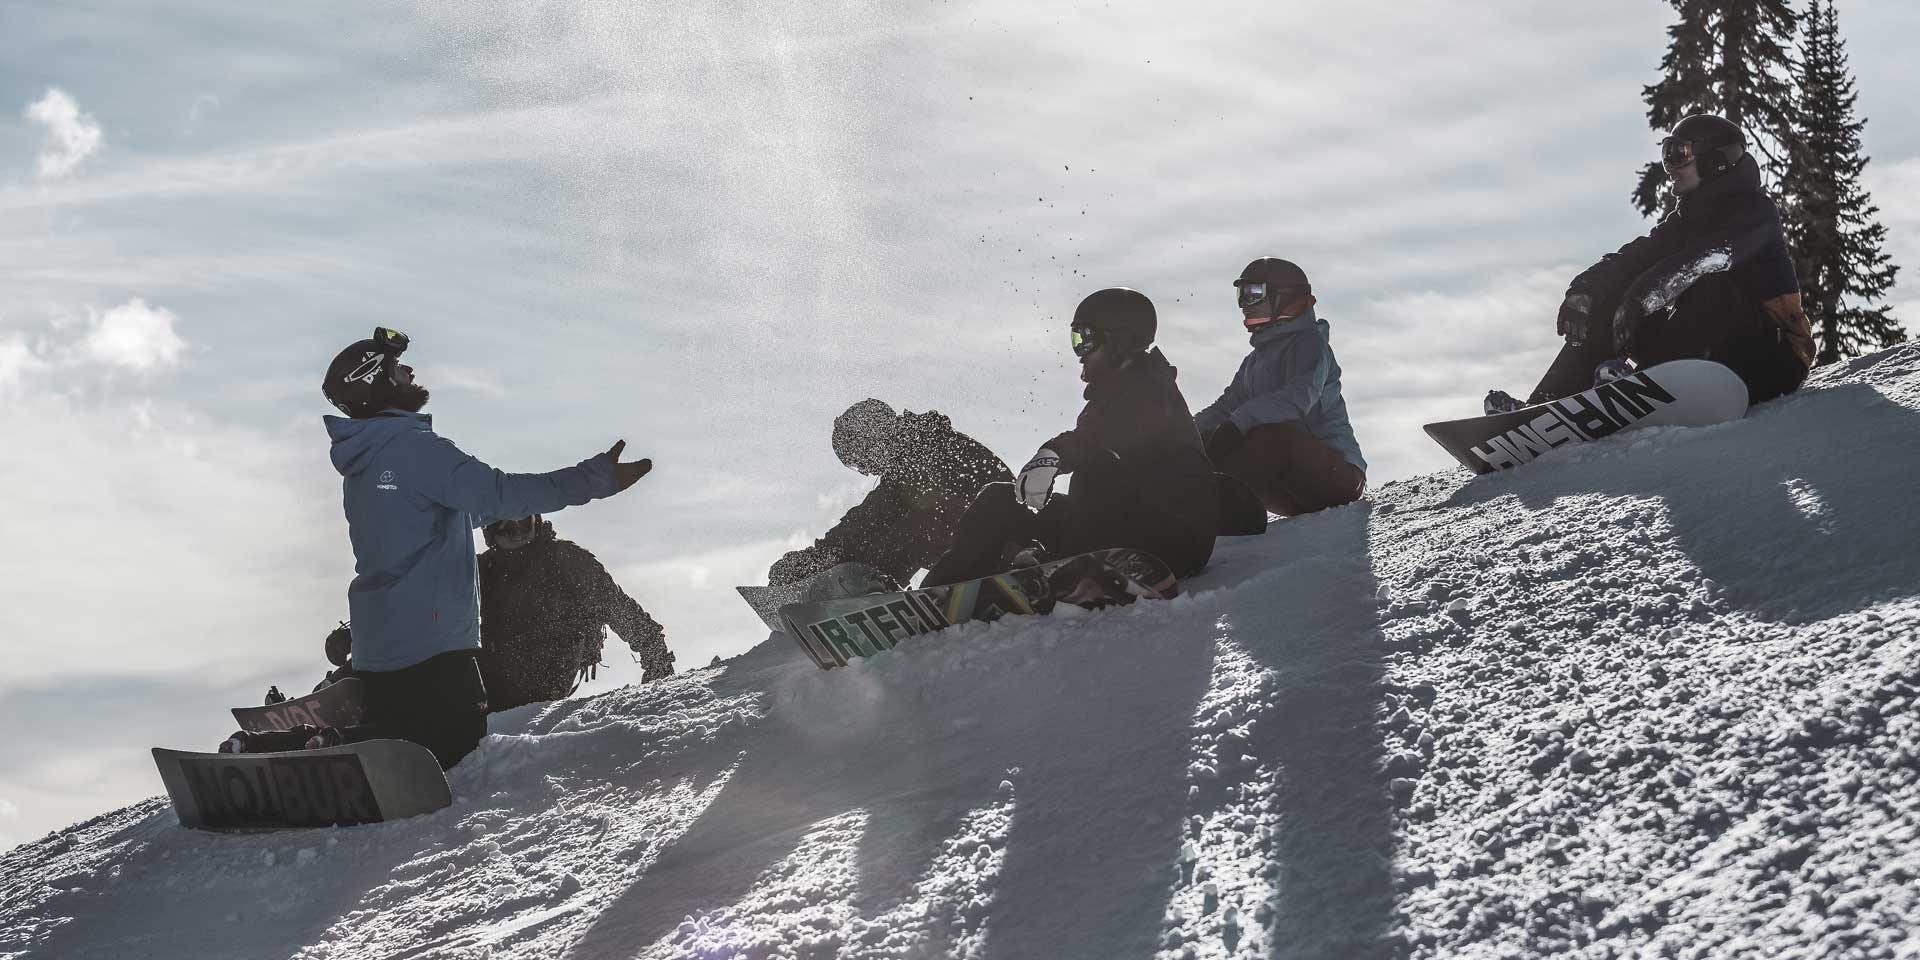 snowboard-group.jpg